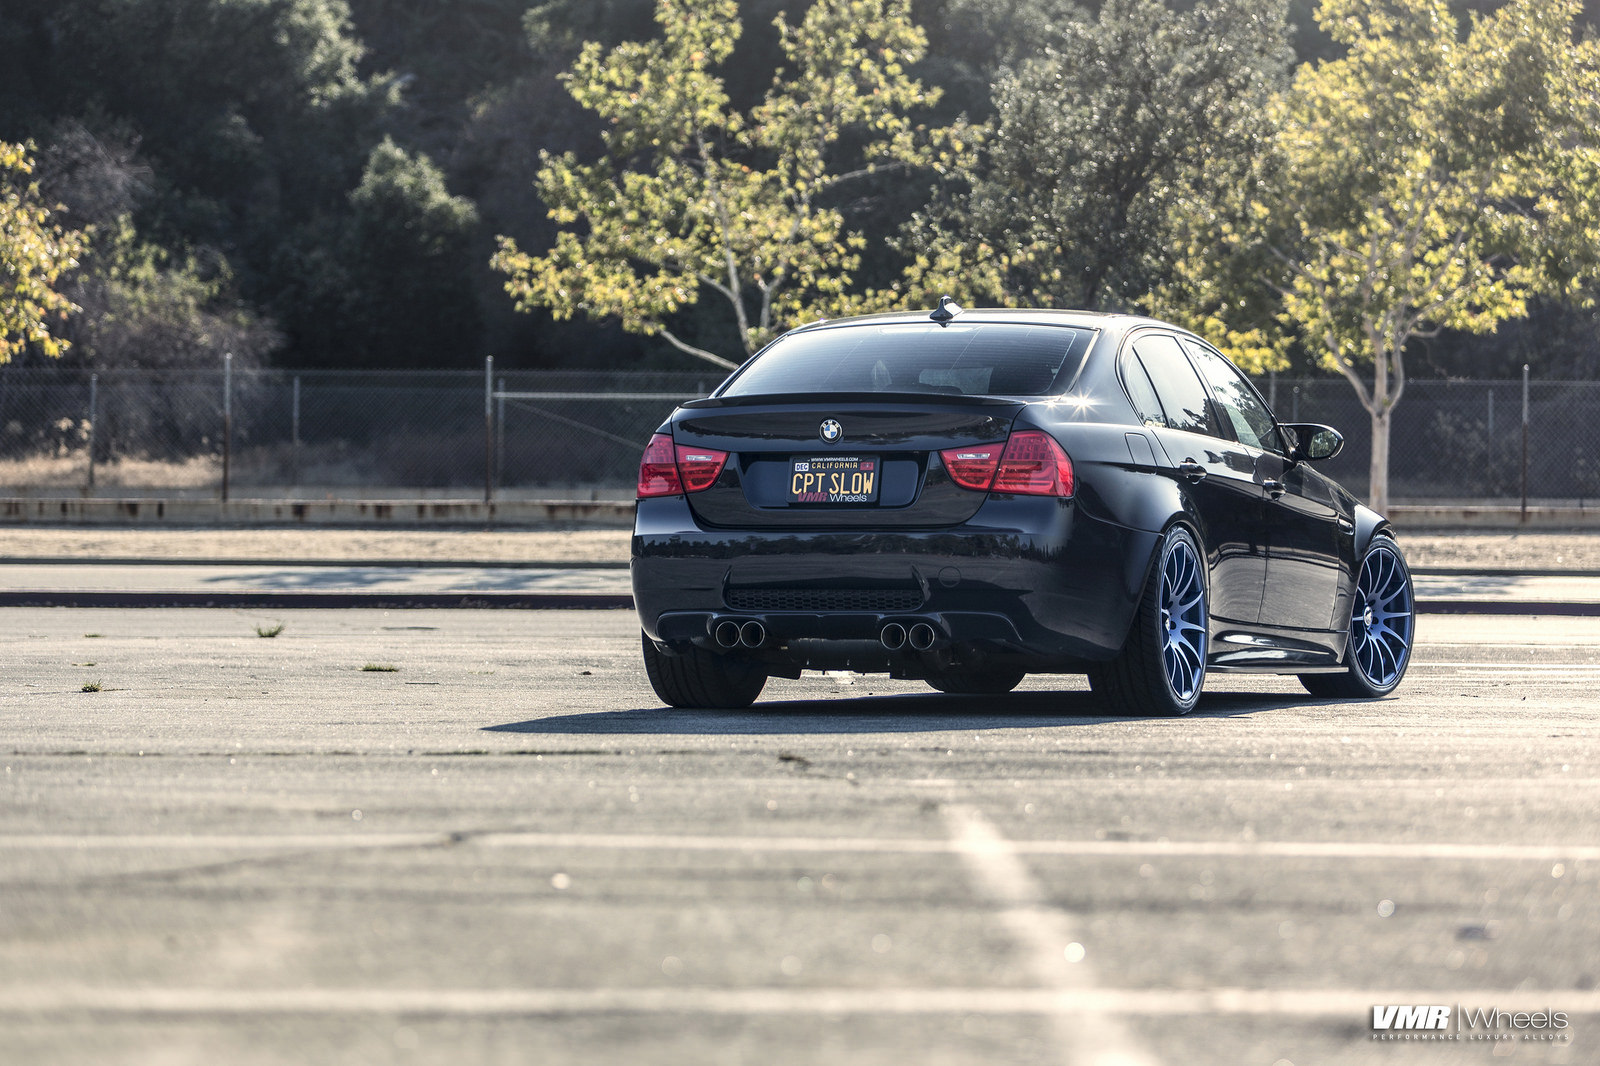 e90-bmw-m3-onvmr-wheels-5